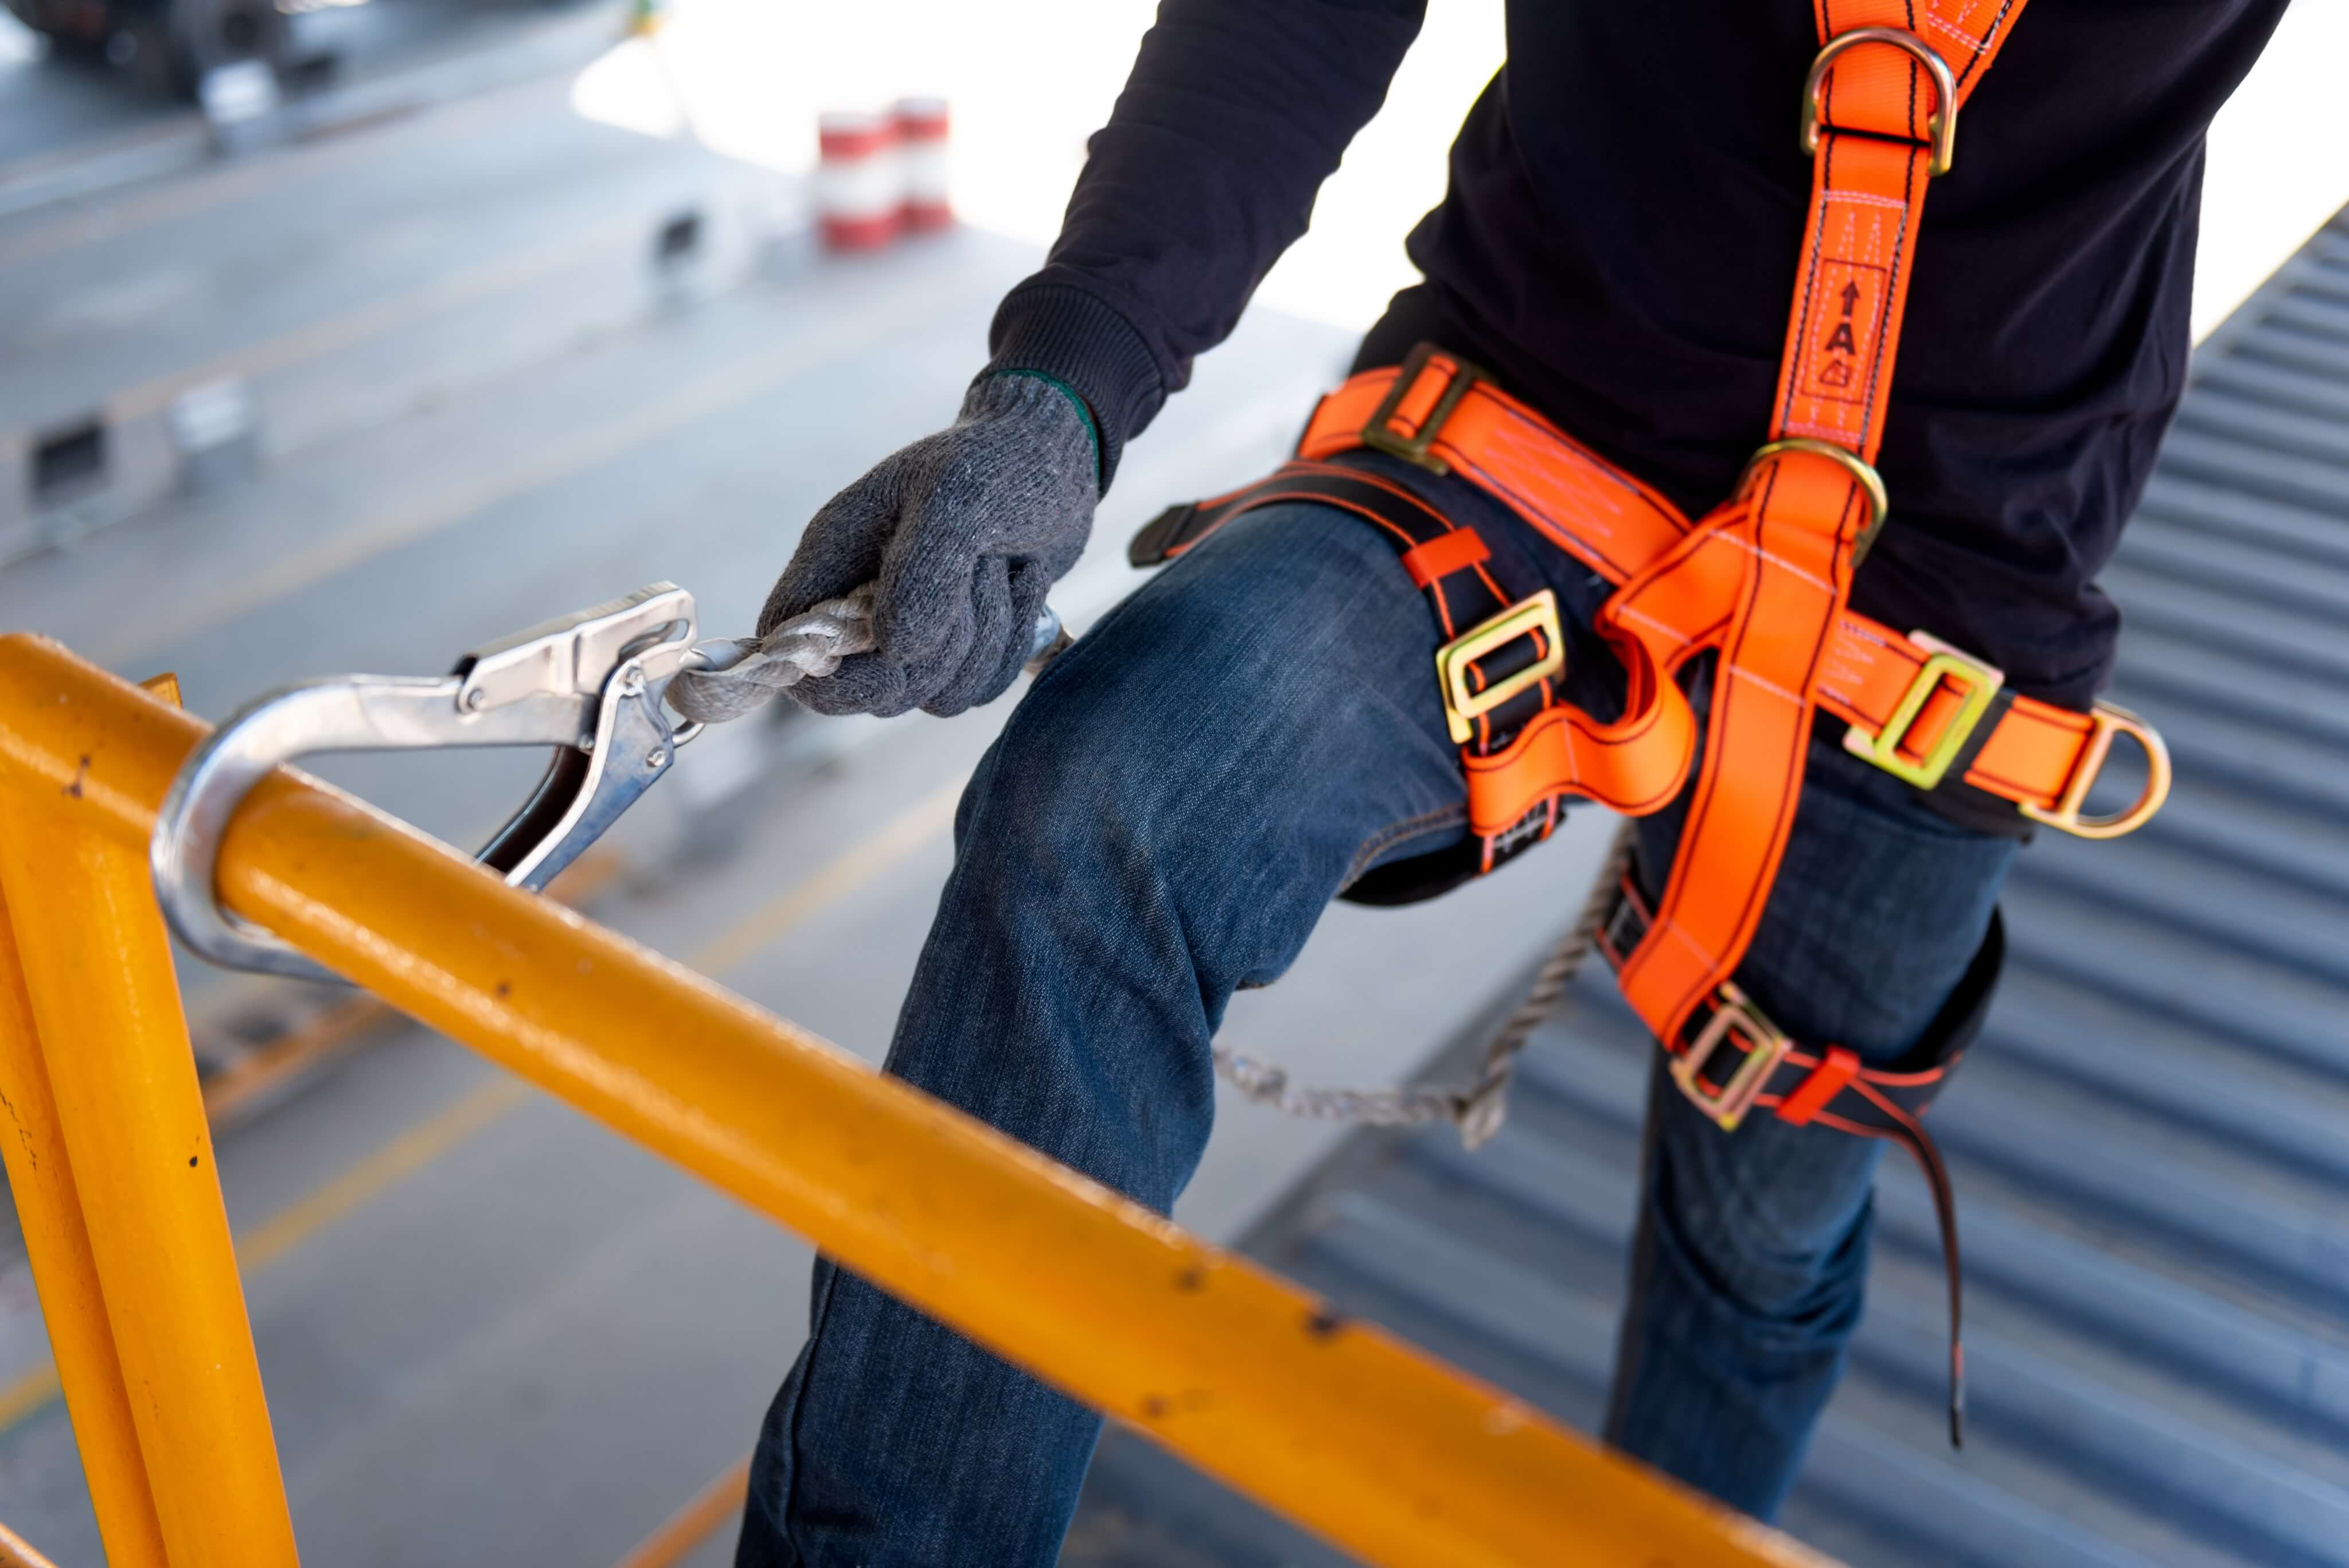 Do You Know How To Properly Inspect Fall Protection Equipment?